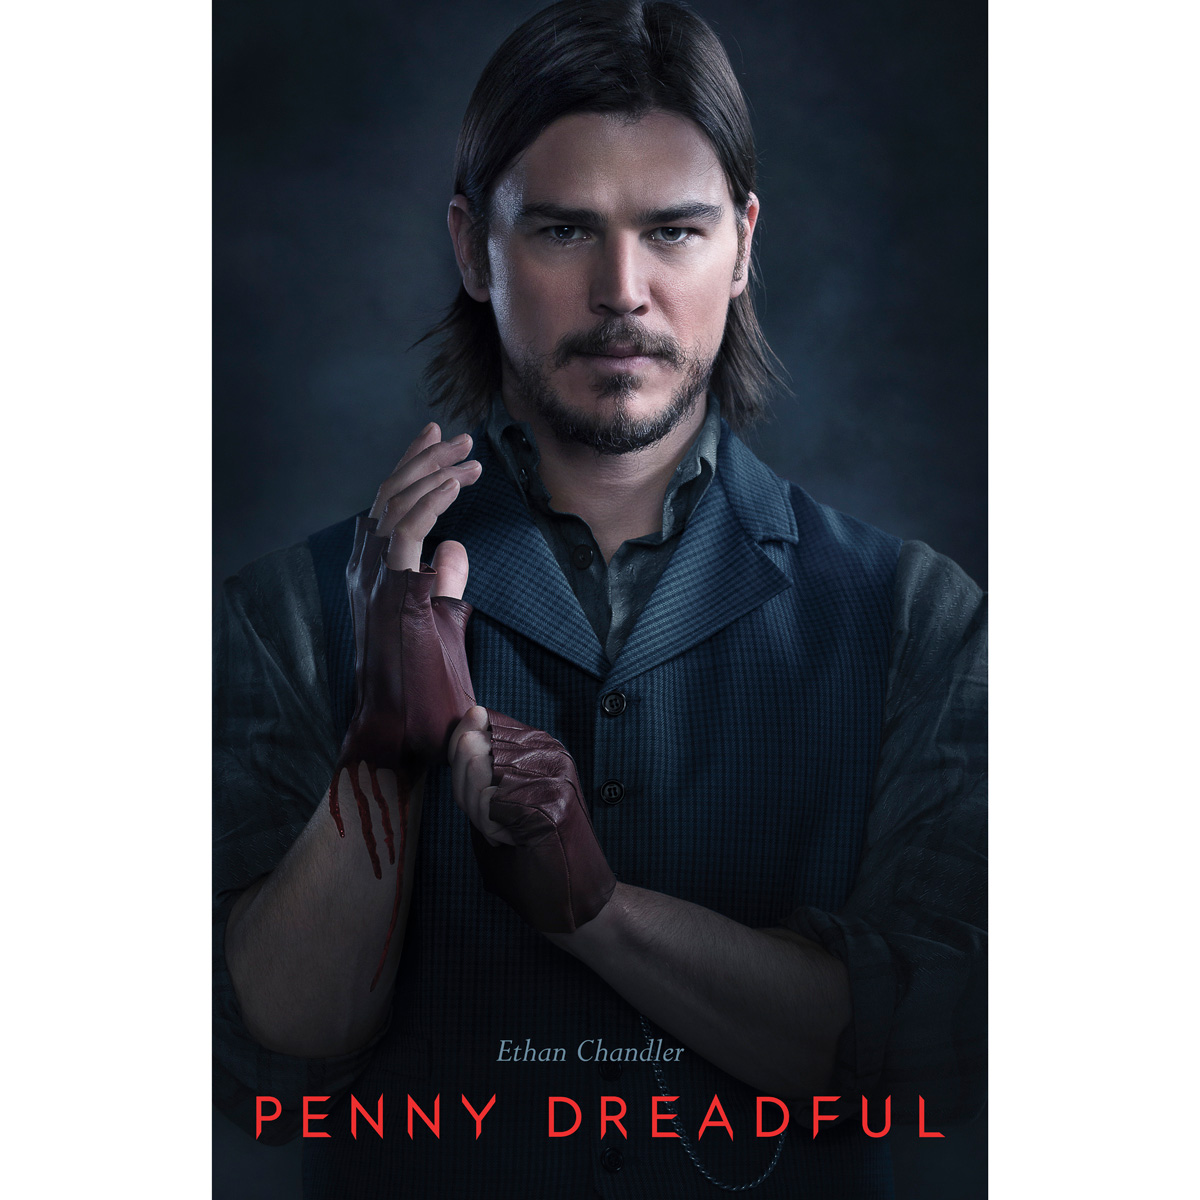 Penny Dreadful Ethan Poster [11x17]